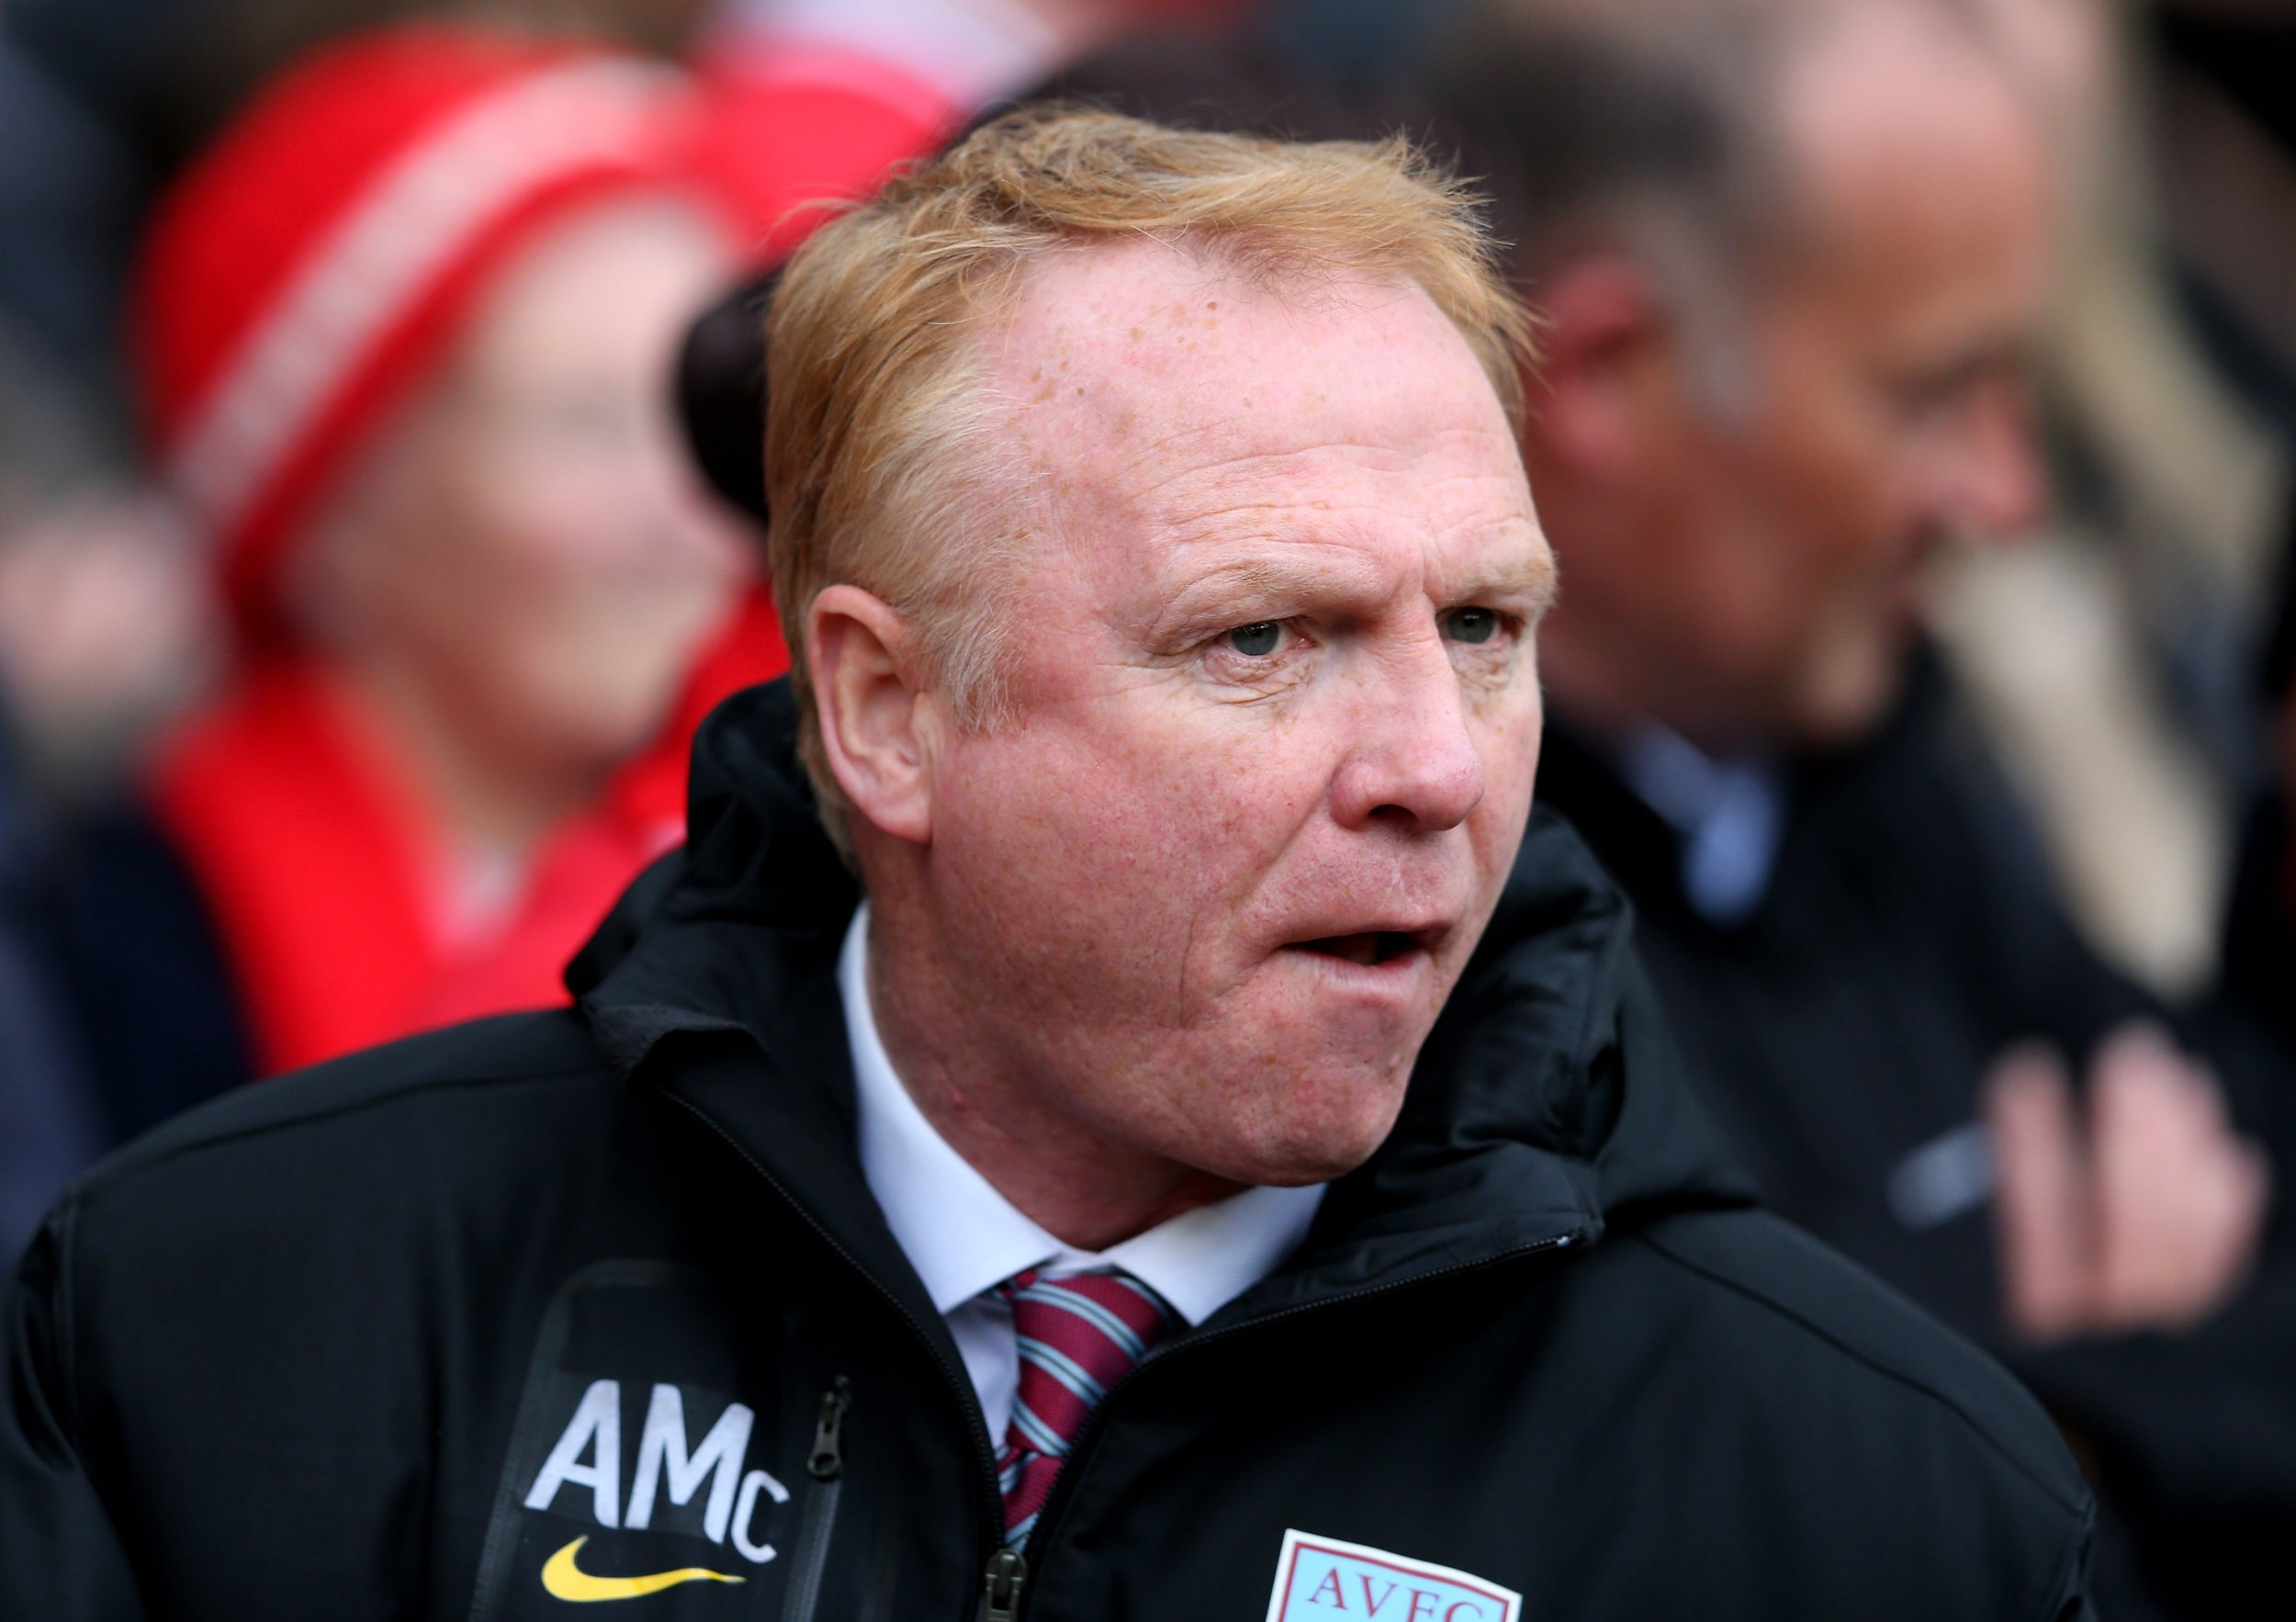 Alex McLeish is set to take up the position of Zamalek head coach.